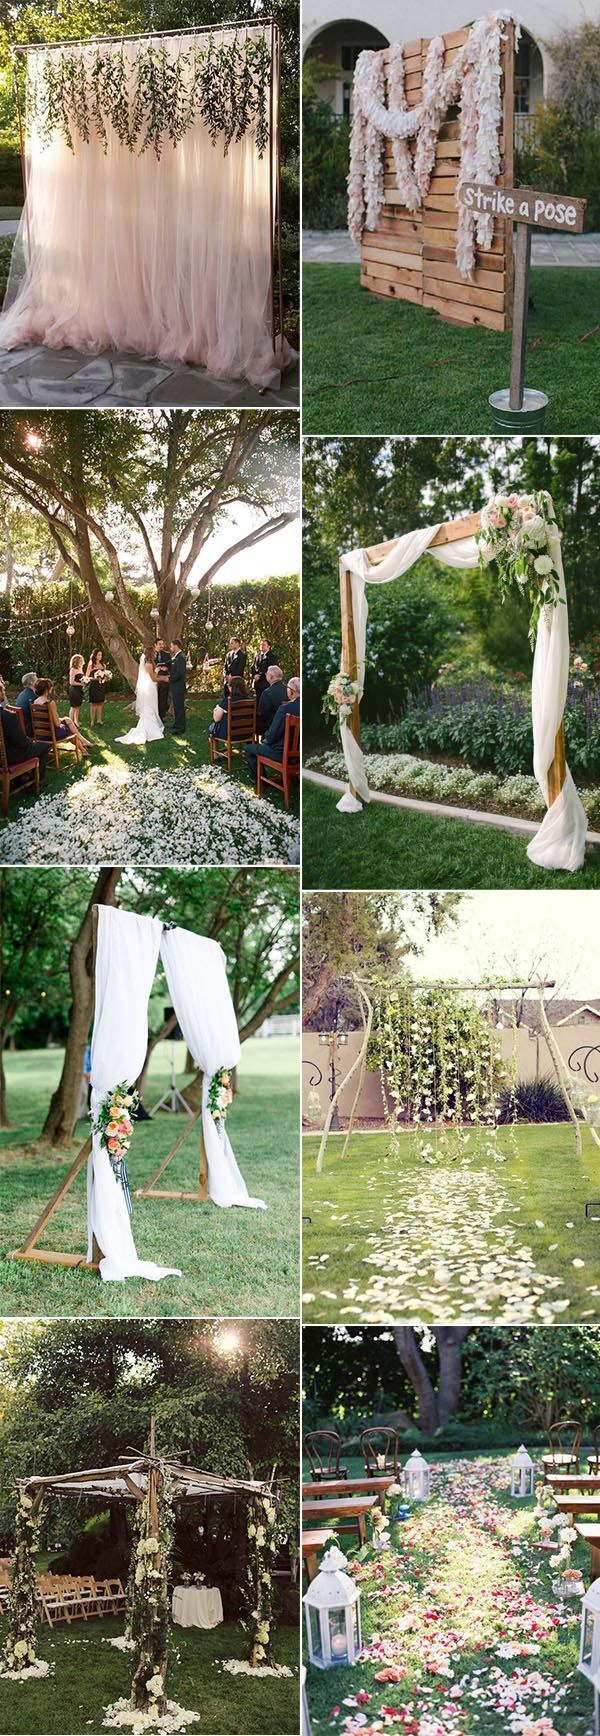 30 sweet ideas for intimate backyard outdoor weddings wedding